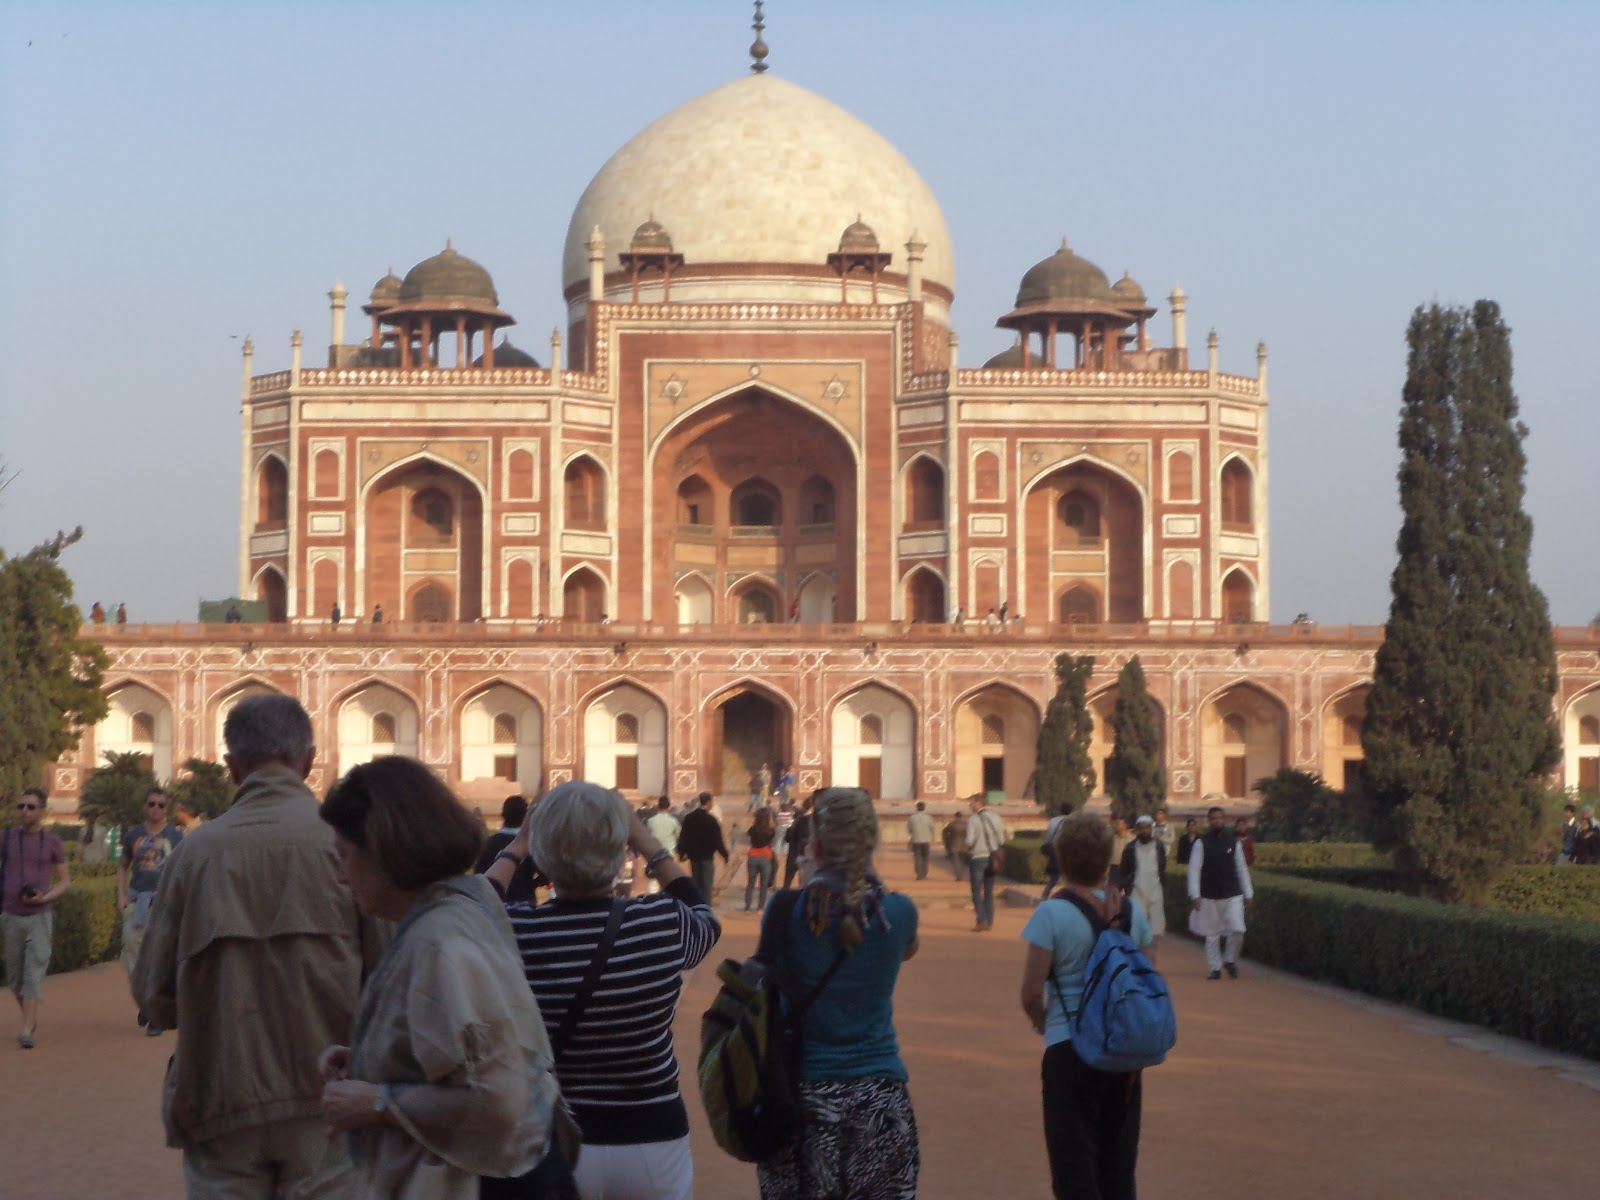 tourist attractions of delhi - photo #11